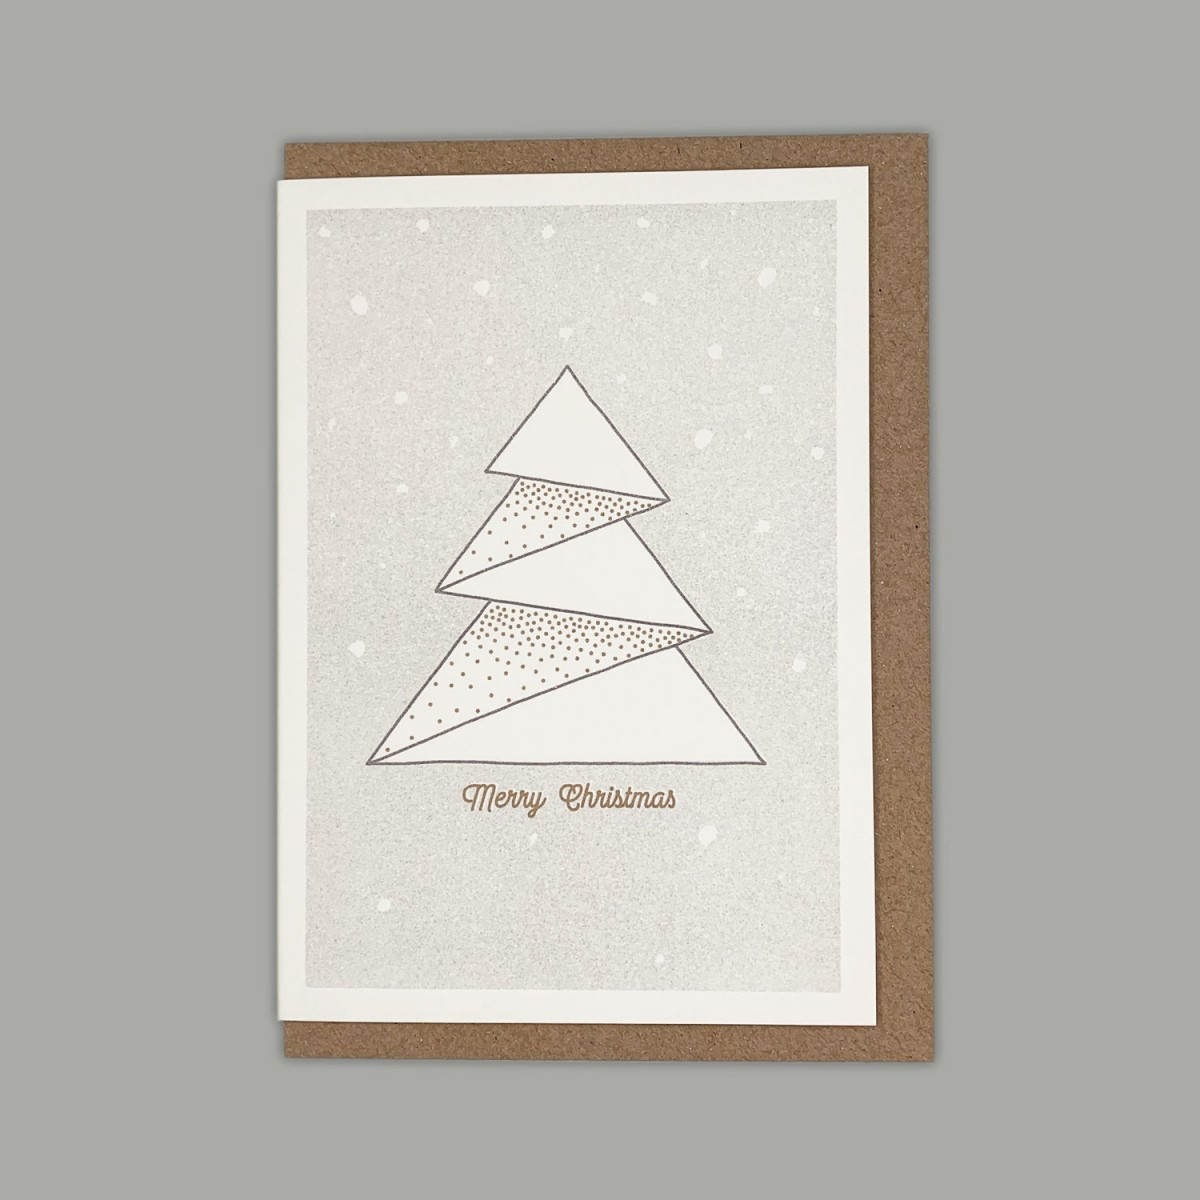 Feingeladen // LIKE ORIGAMI // Tree »Merry Christmas« (GRGD) – A6